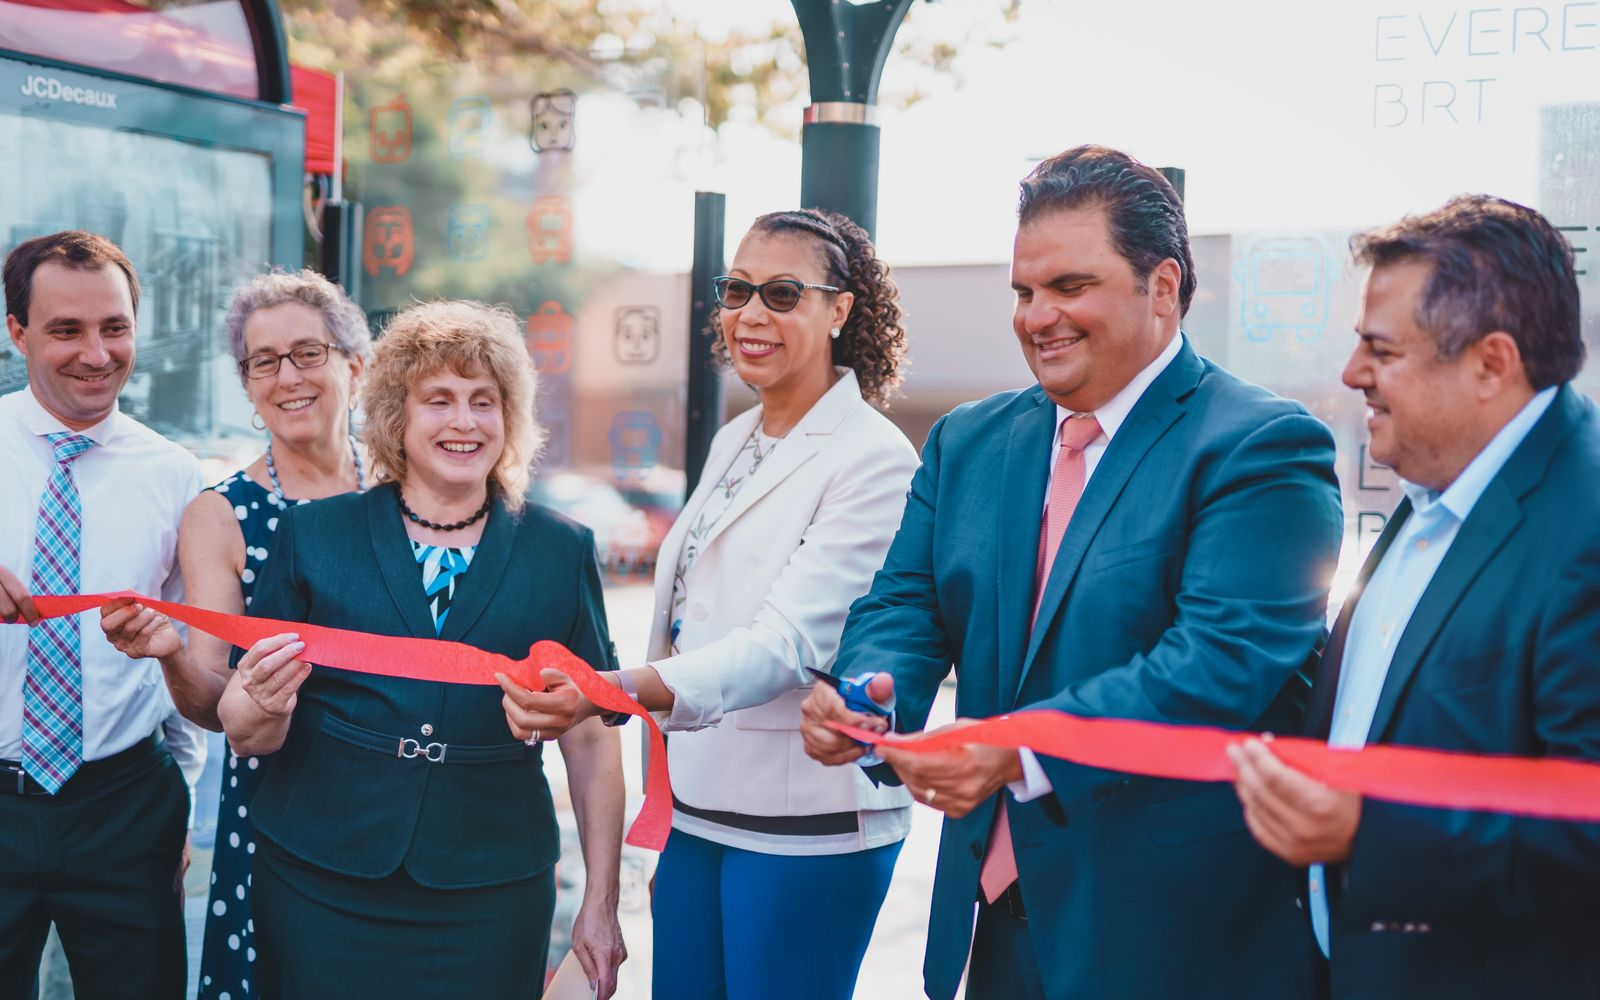 People standing behind a red ribbon at a ribbon cutting ceremony.